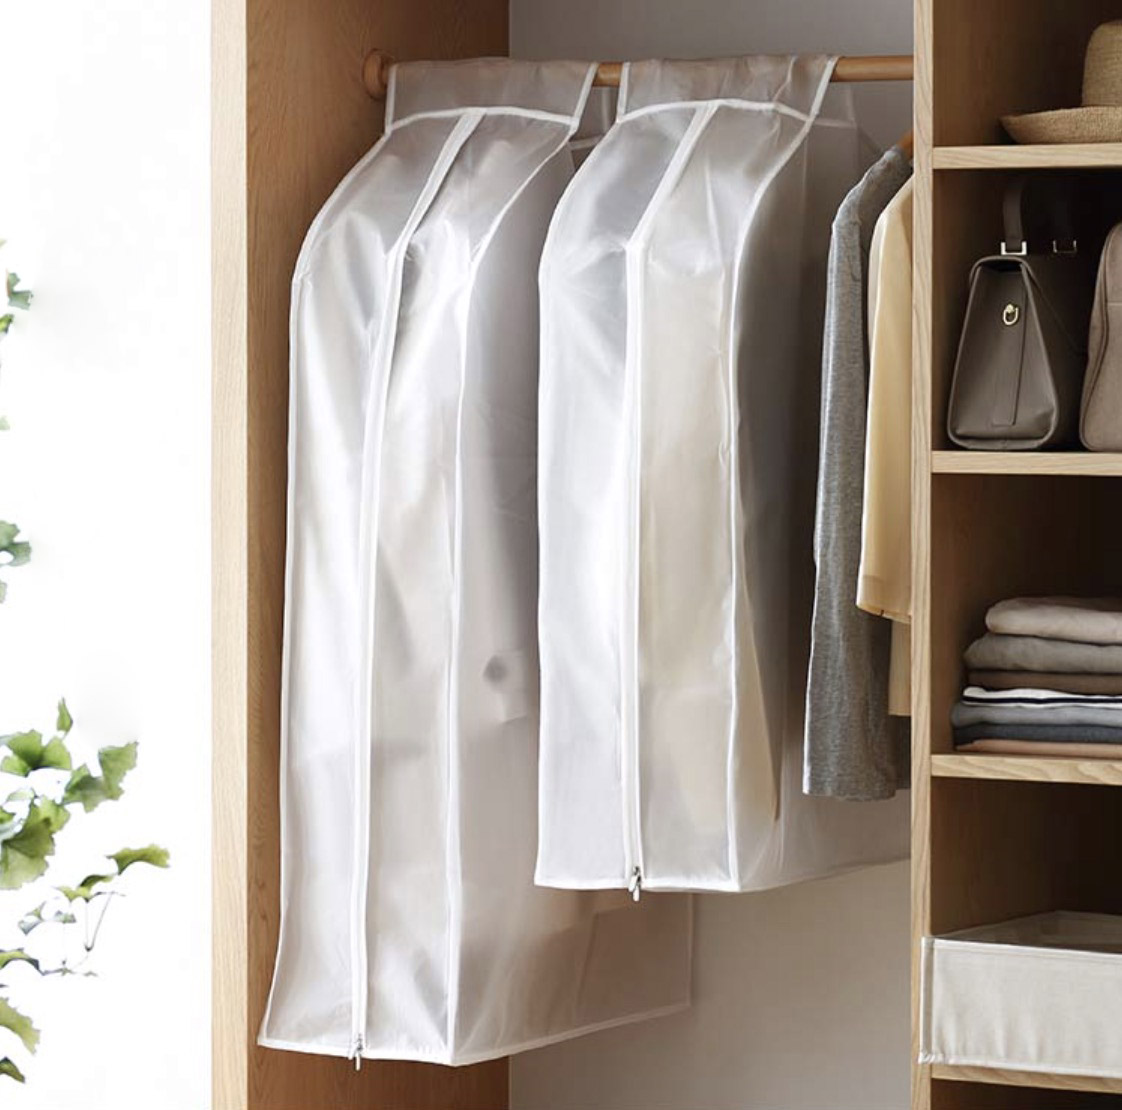 Closet Clothes Dust Covers Image Of Bathroom And Closet